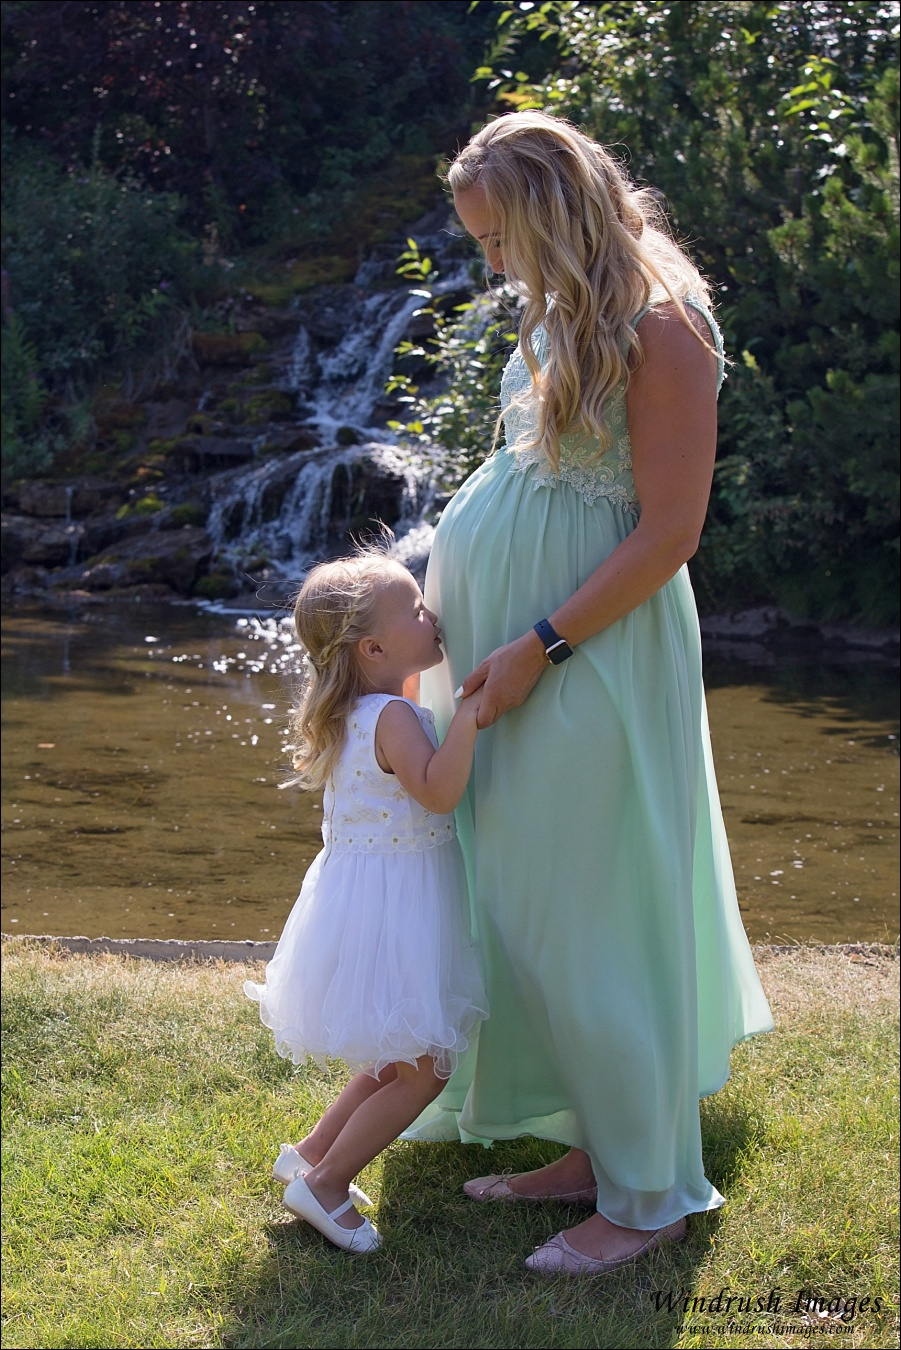 Pregnant-mom-and-daughter-in-front-of-waterfall-at-maternity-session.jpg